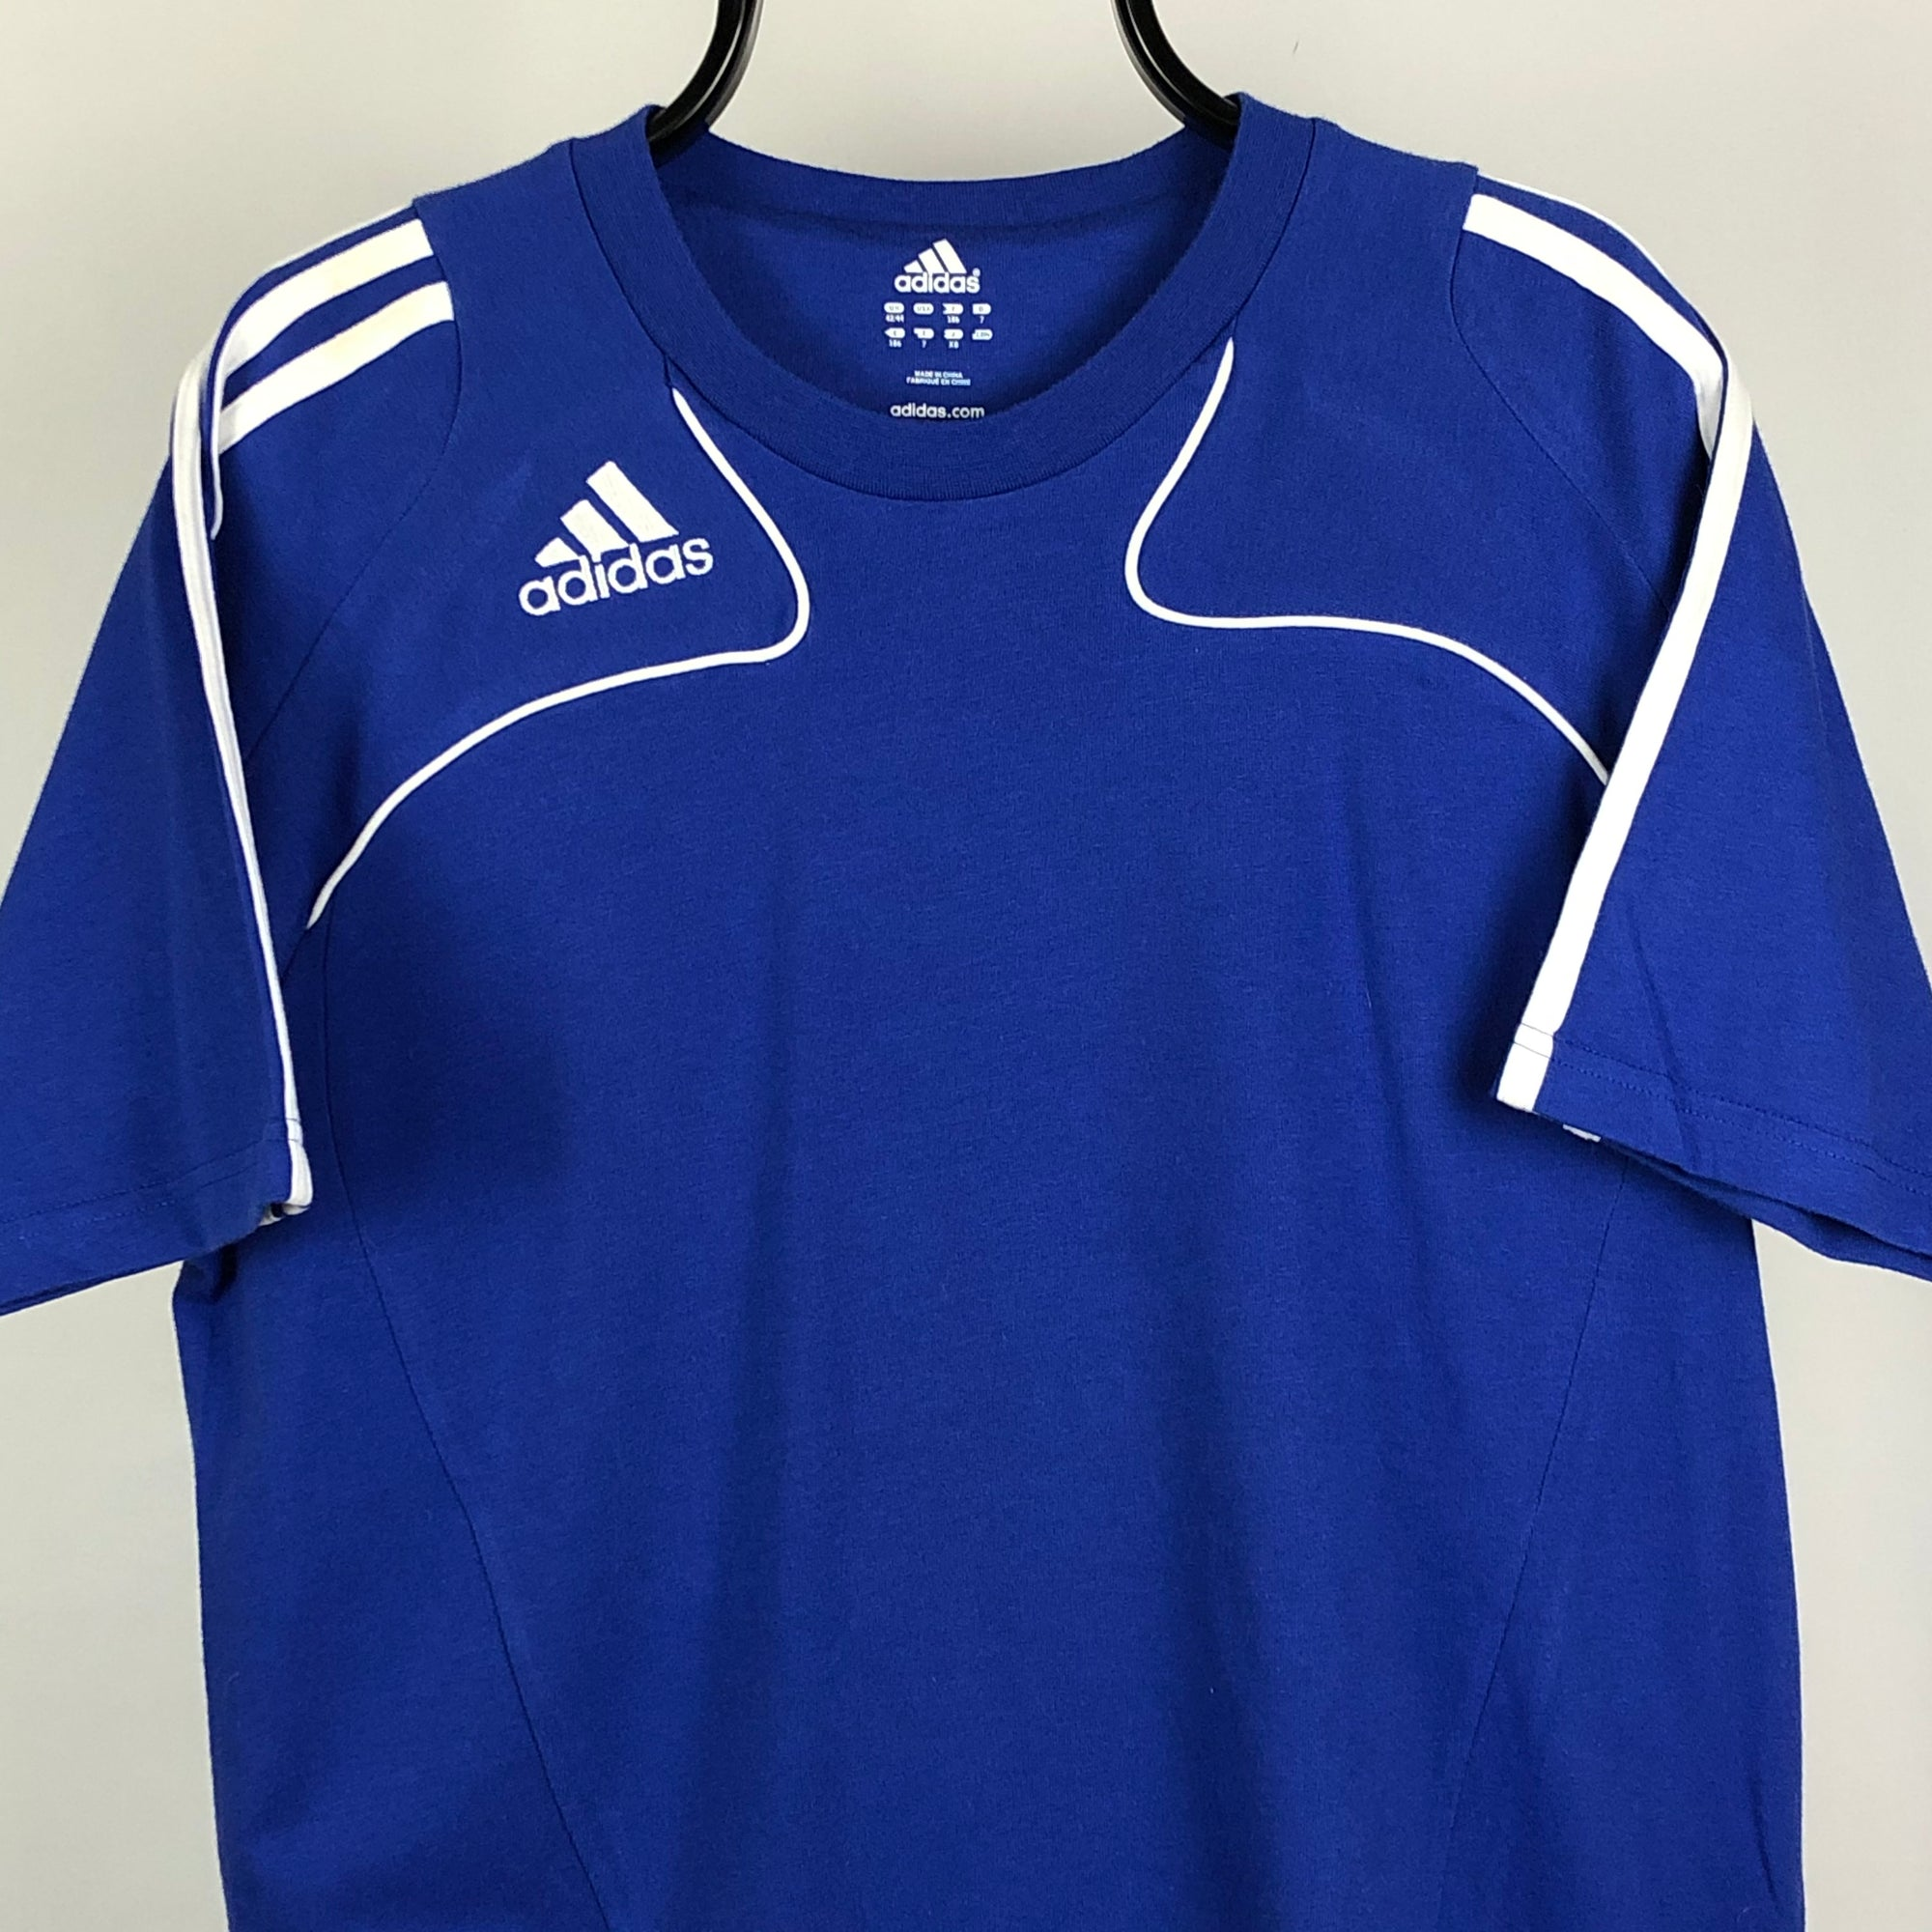 Adidas Embroidered Small Logo Tee in Blue/White - Men's Large/Women's XL